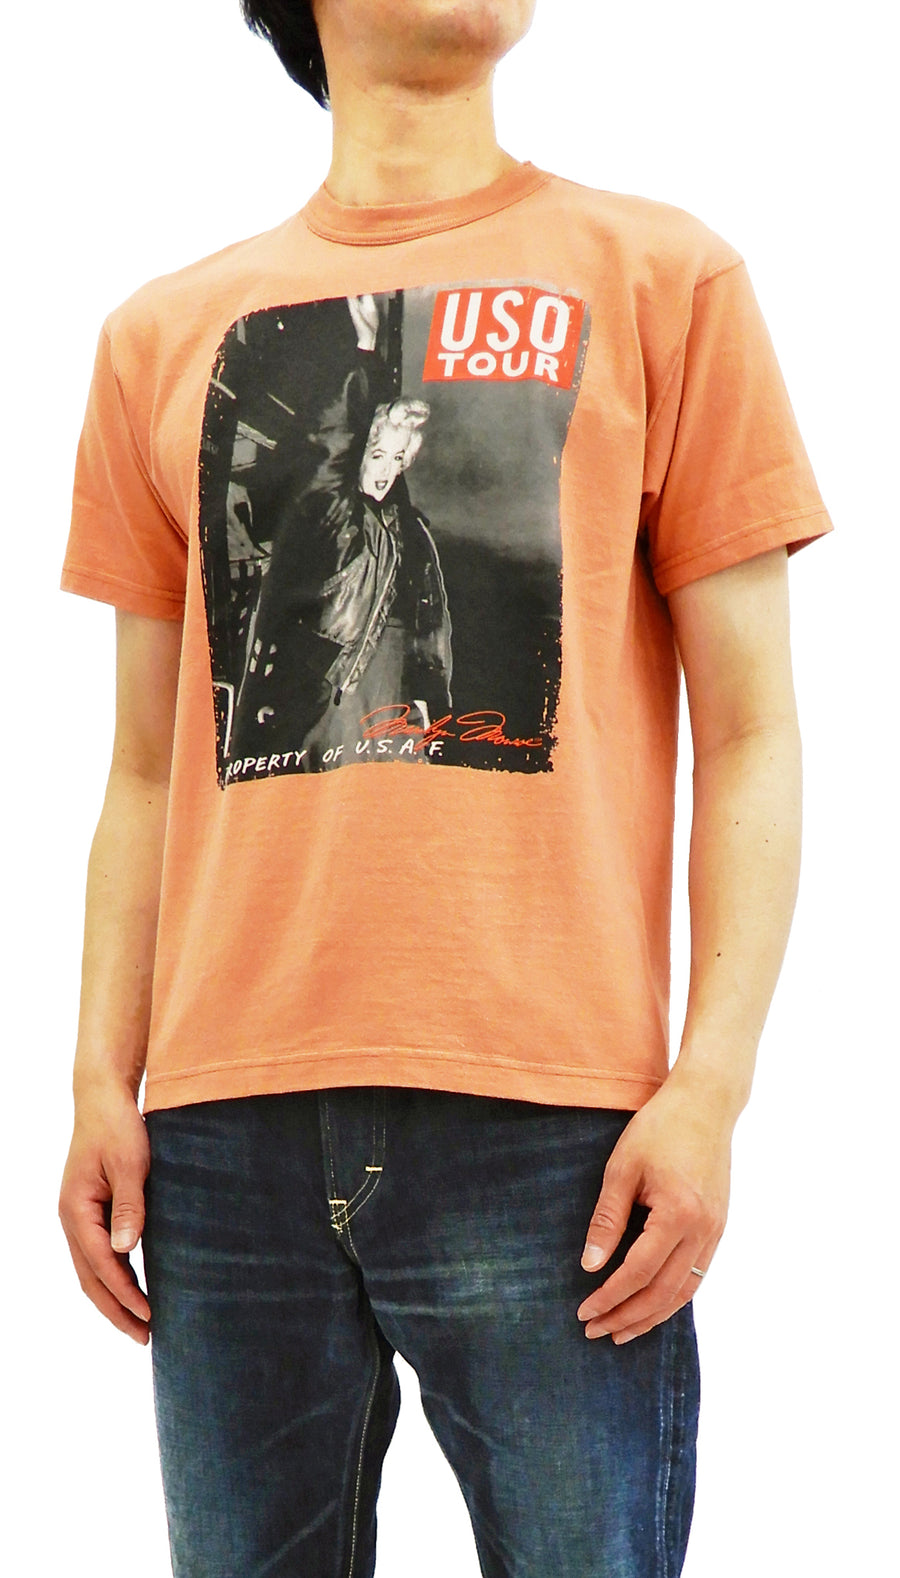 TOYS McCOY T-shirt Men's Short Sleeve T-shirt Marilyn Monroe Graphic Tee TMC1820 Faded Carrot